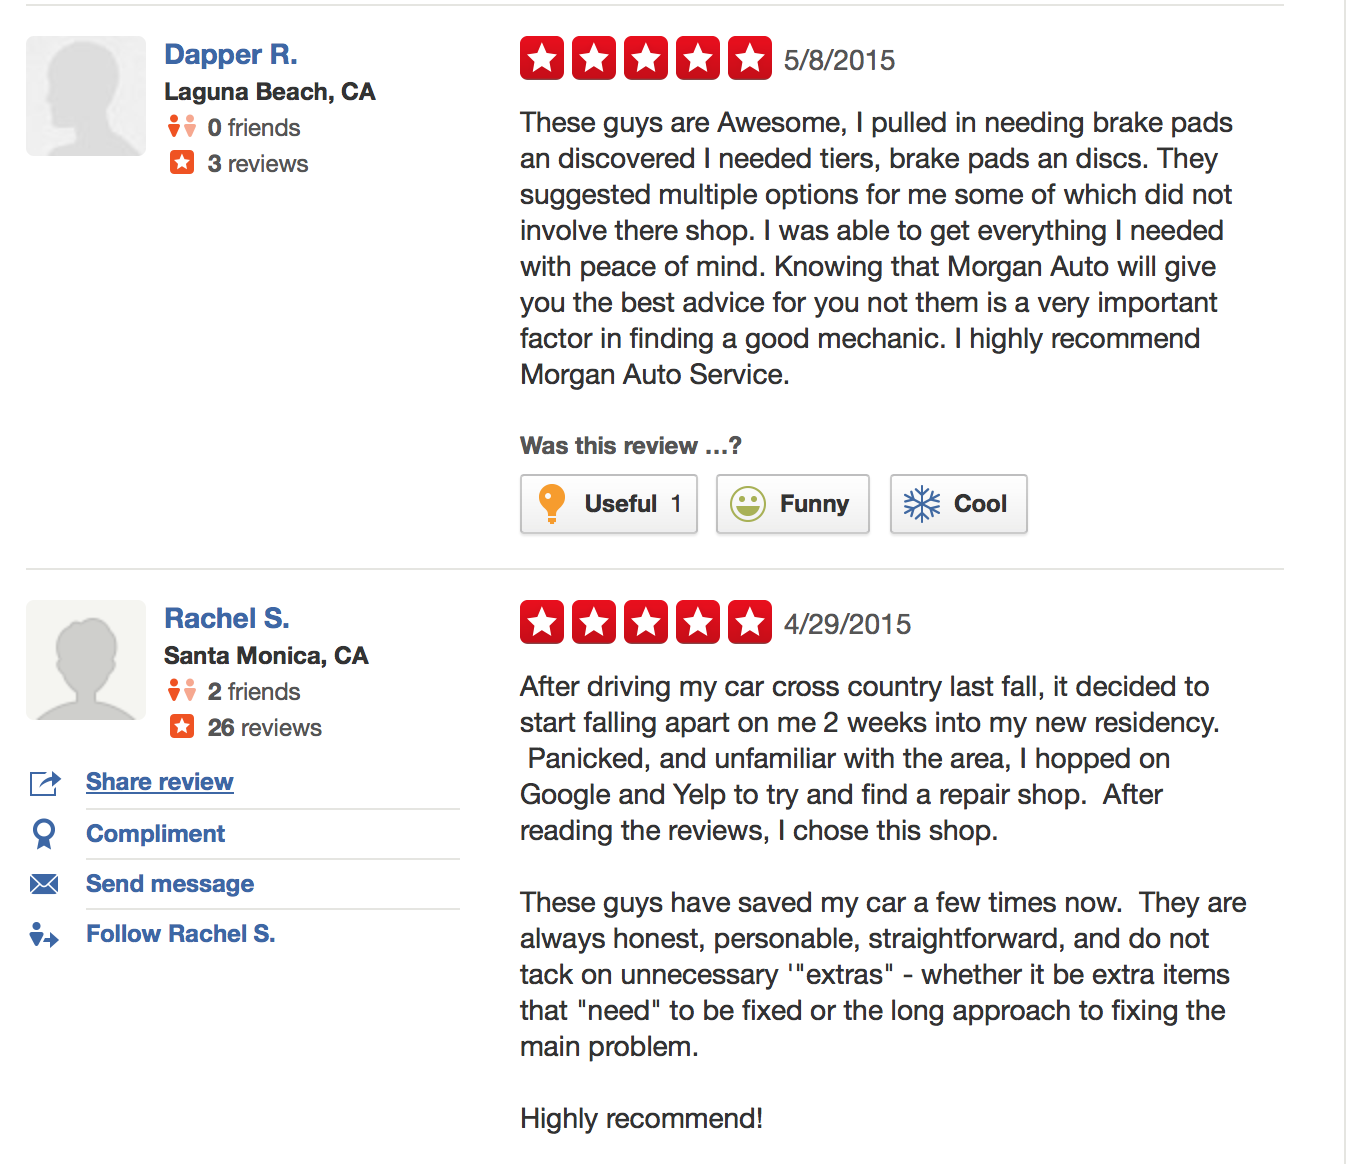 TWO OUT OF MANY WONDROUS REVIEWS ON YELP...THANK YOU TO OUR DEDICATED CUSTOMERS WHO SUPPORT US, REFER FRIENDS & FAMILY, &  KEEPING COMING BACK!